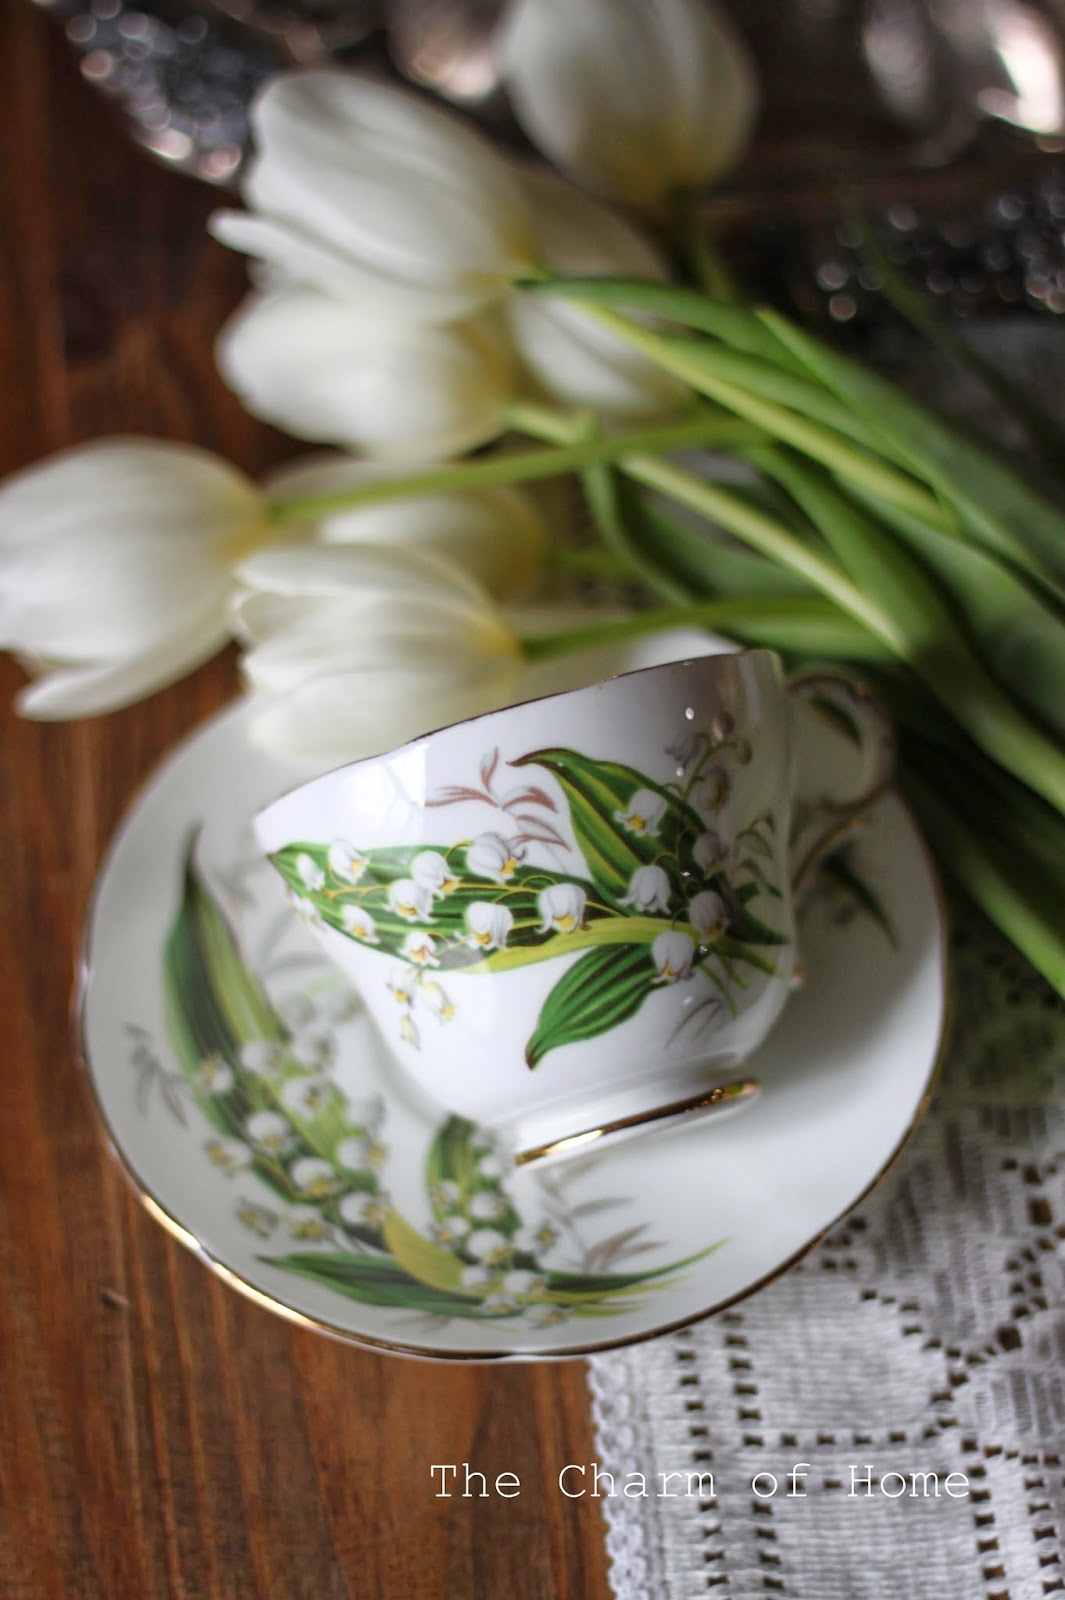 Lily of the Valley china, The Charm of Home